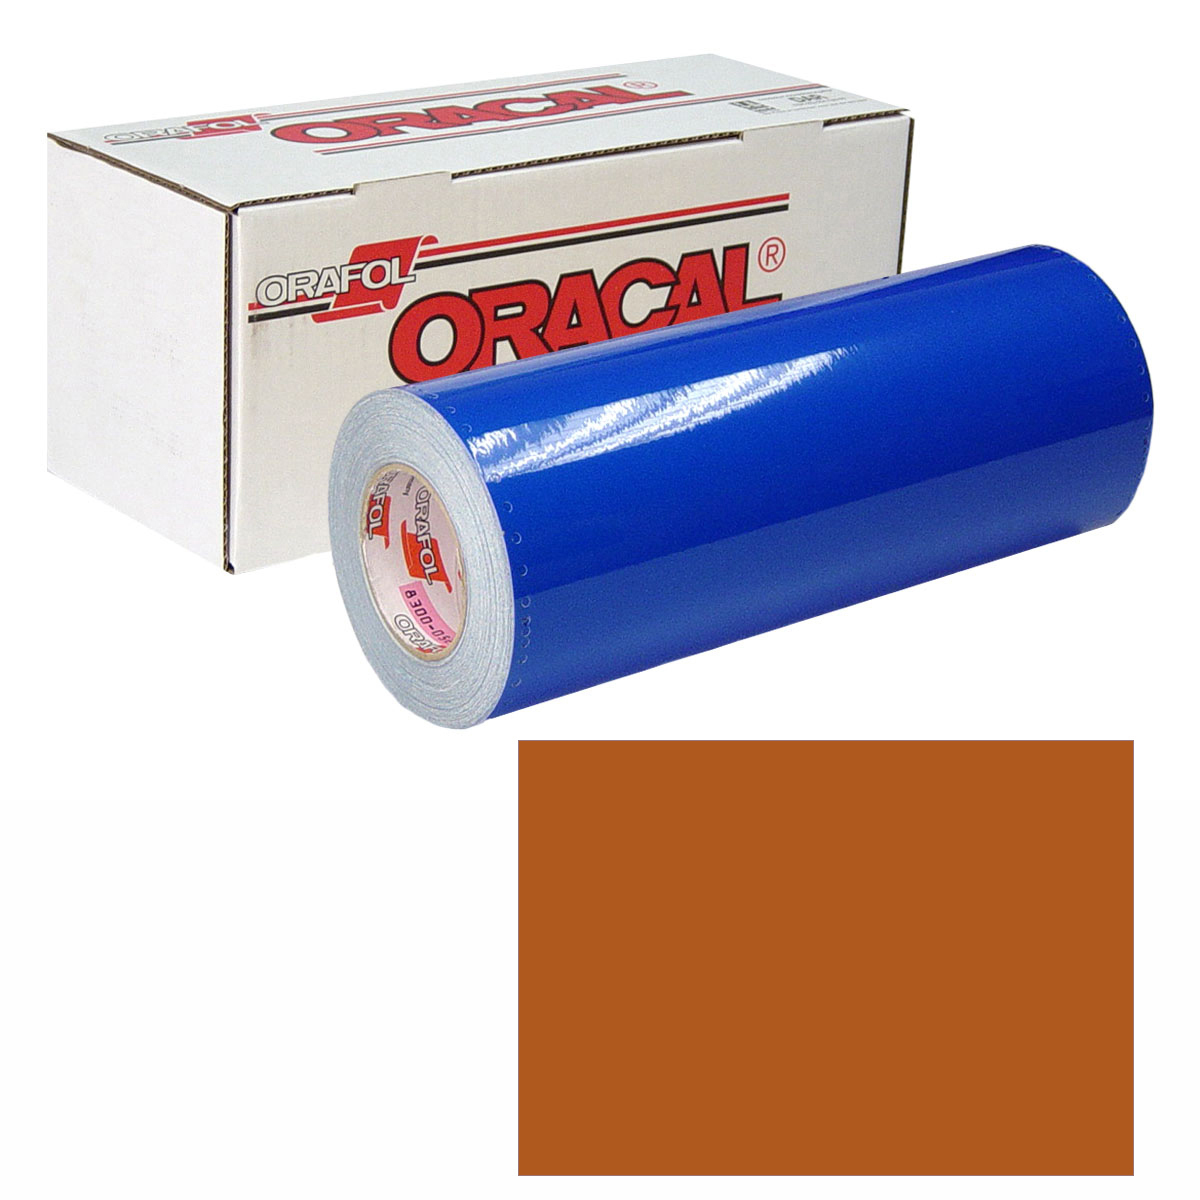 ORACAL 631 Unp 48in X 50yd 083 Nut Brown